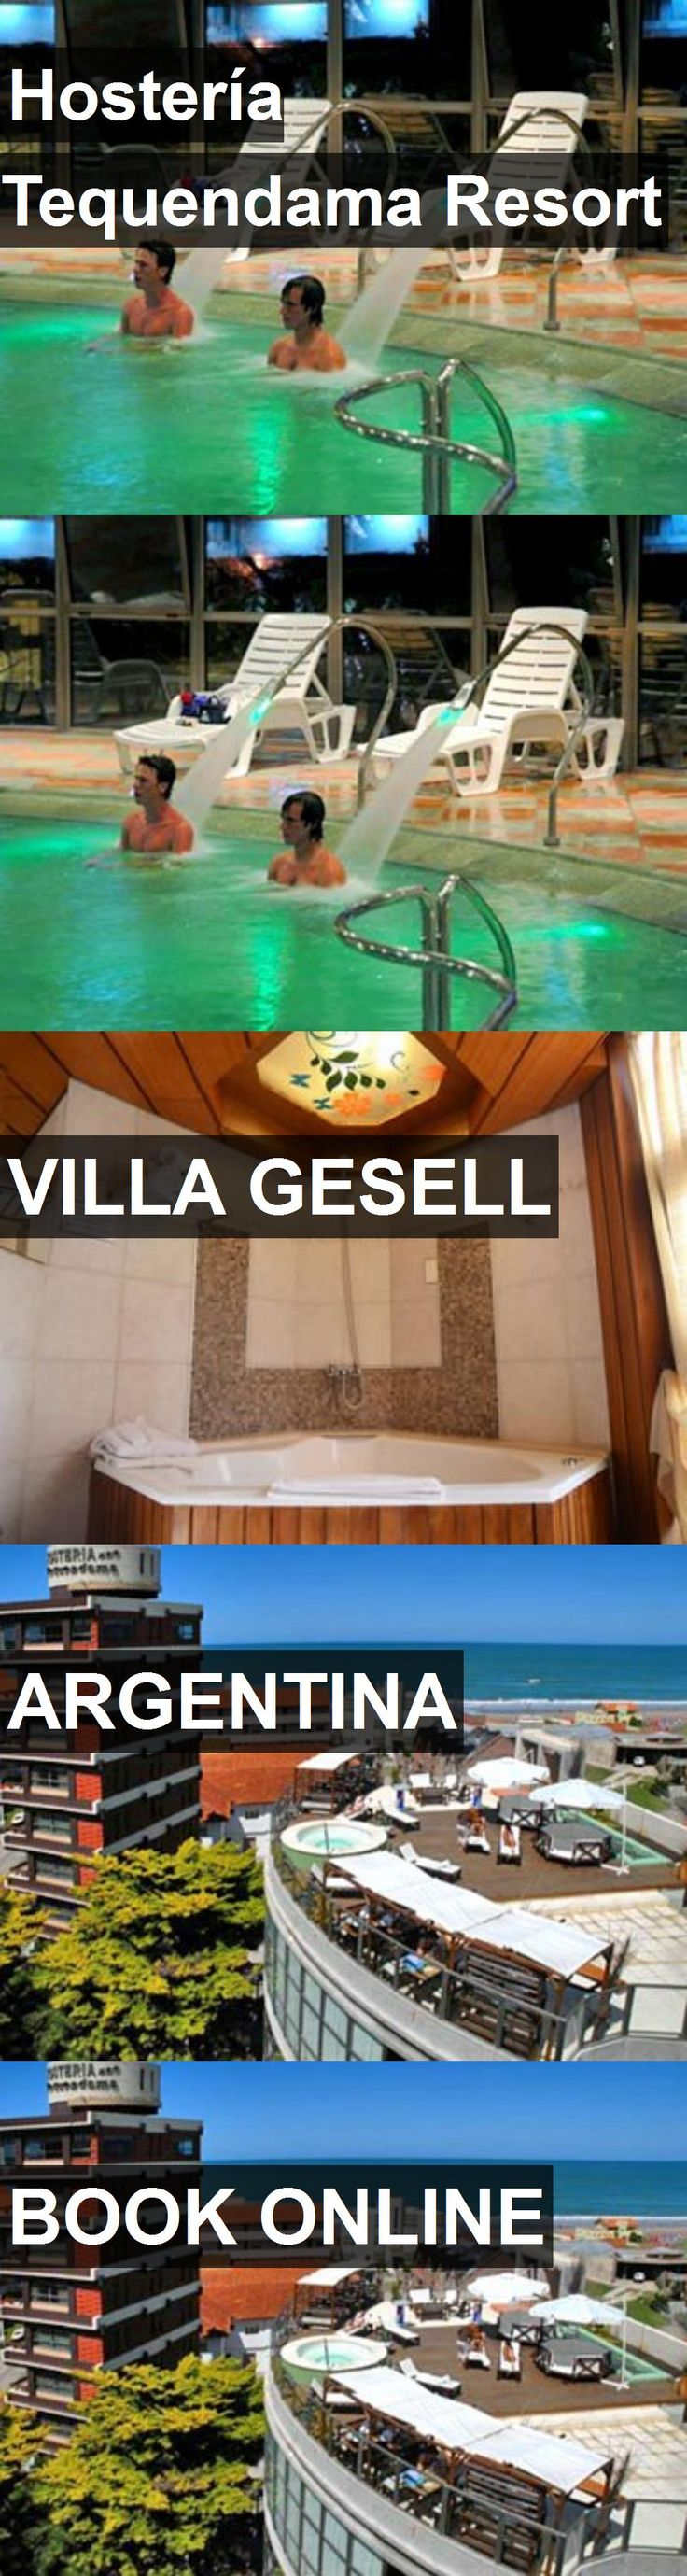 Hotel Hostería Tequendama Resort in Villa Gesell, Argentina. For more information, photos, reviews and best prices please follow the link. #Argentina #VillaGesell #hotel #travel #vacation